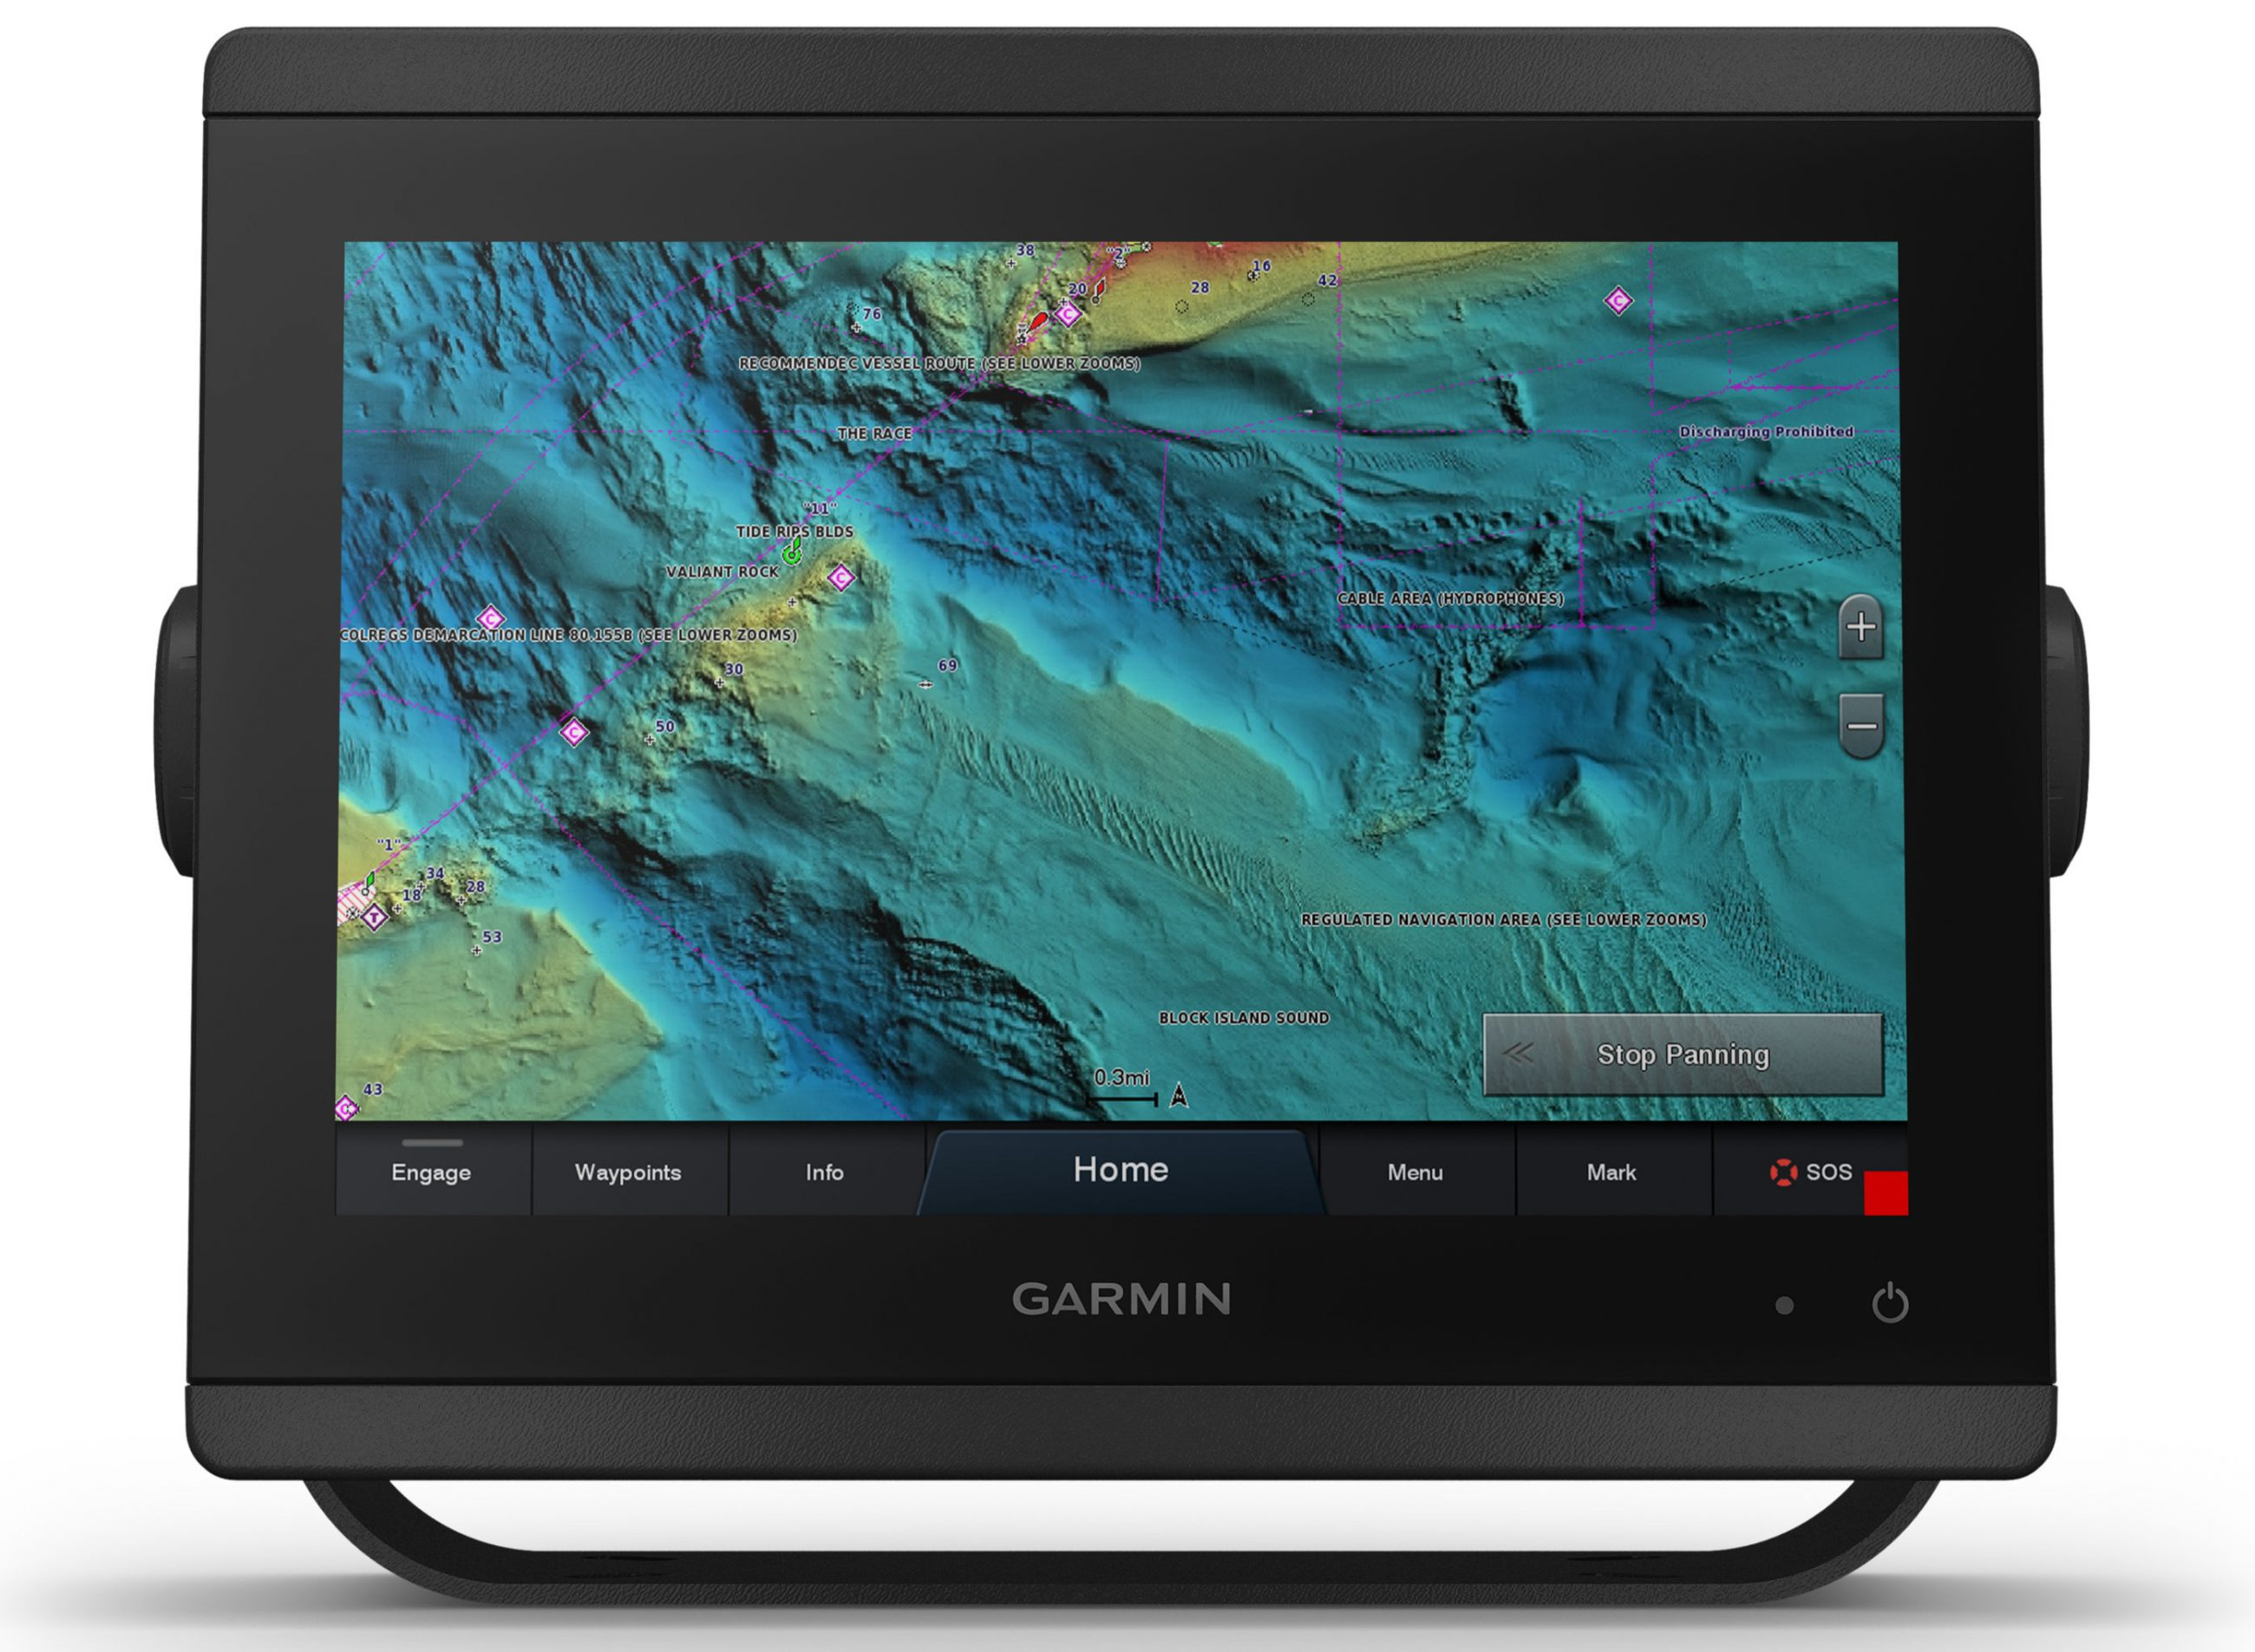 Garmin adds high-resolution relief shading to its premium